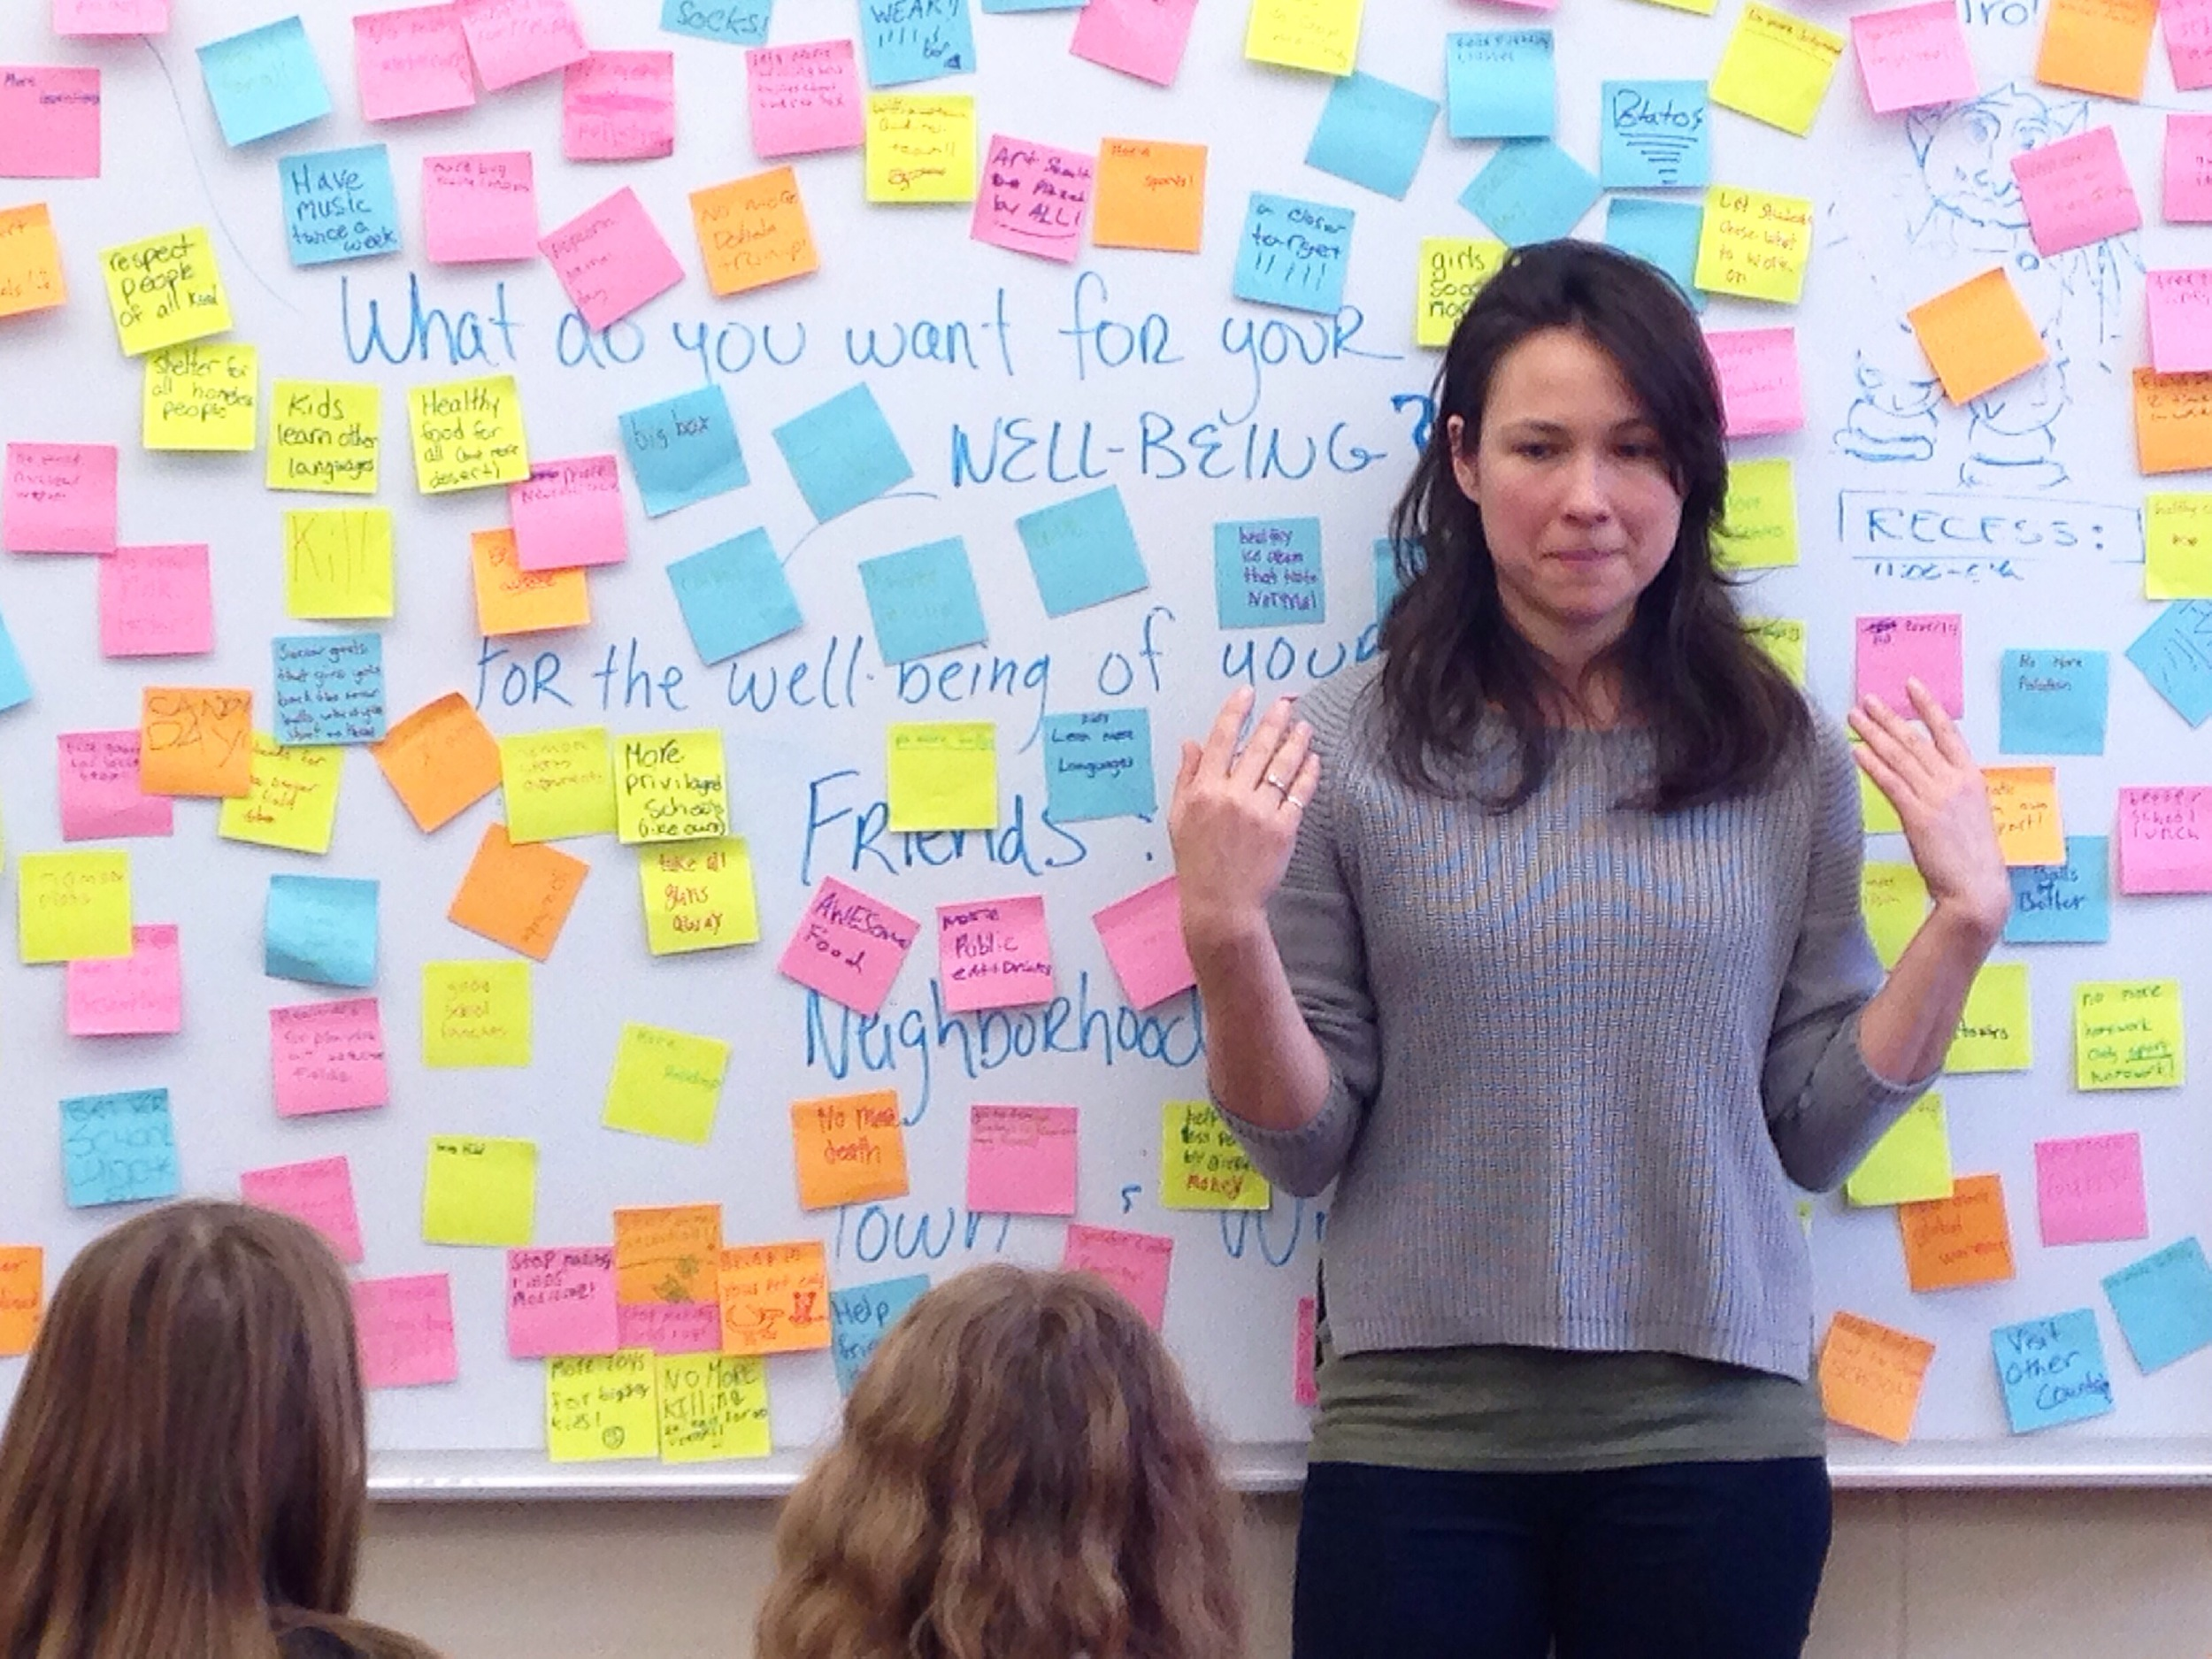 Emily Johnson facilitating a Community Visioning Session at Williamstown Elementary School. Photo by Maggie Thompson